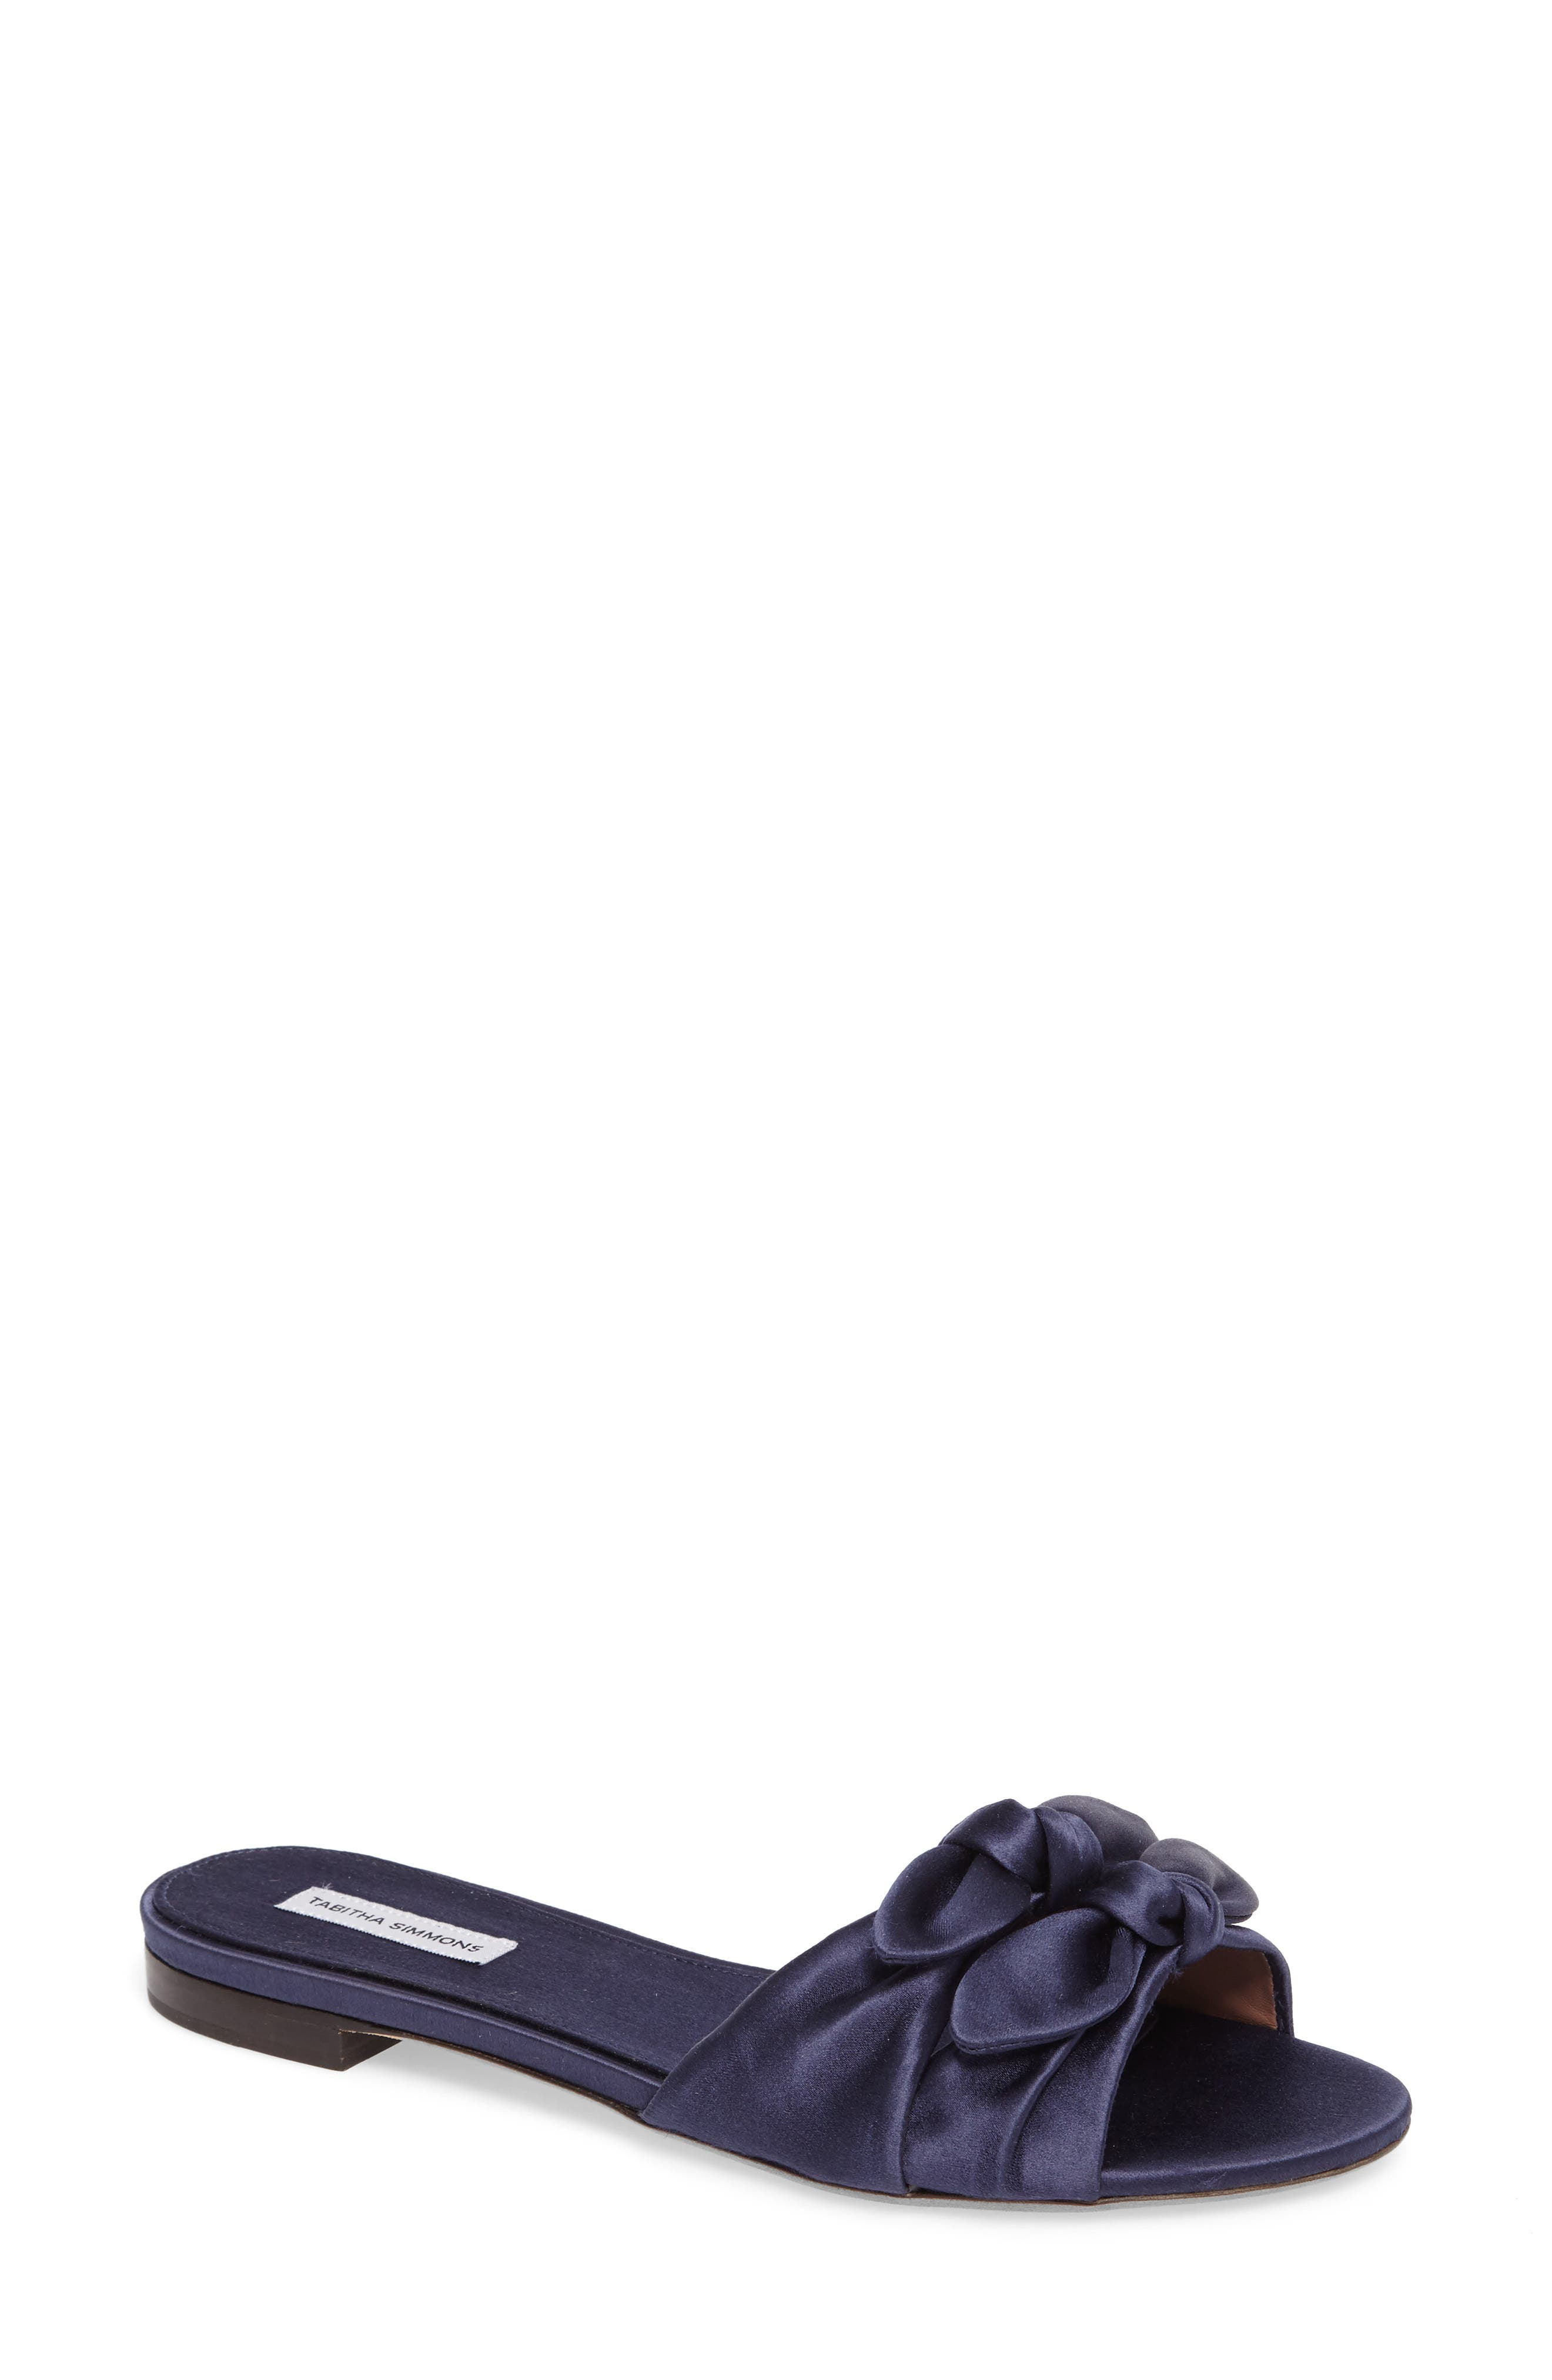 Main Image - Tabitha Simmons Cleo Knotted Bow Slide Sandal (Women)